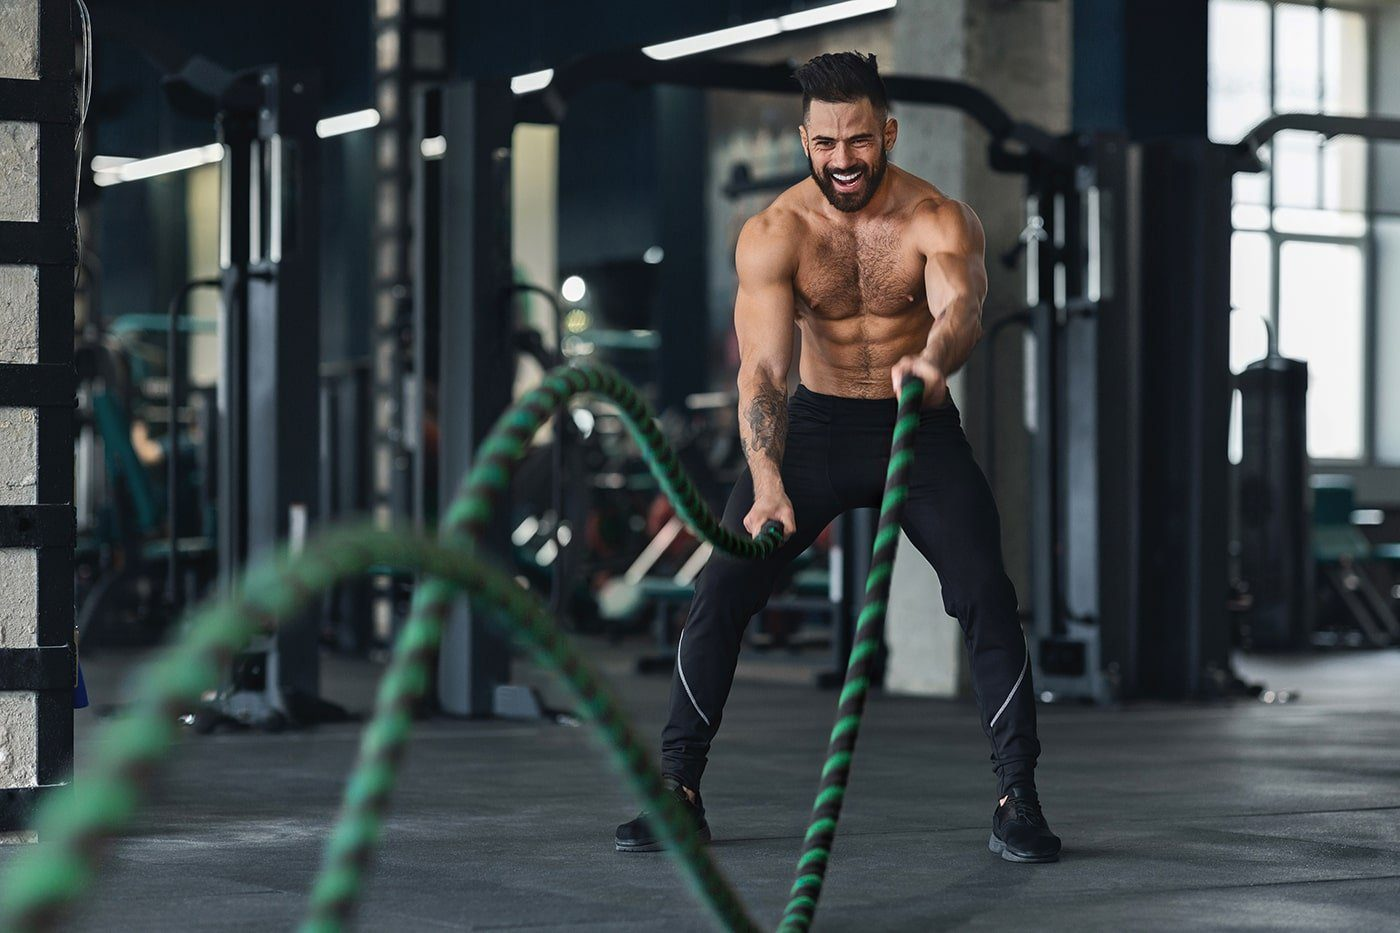 naked-muscular-man-exercising-with-battle-ropes-9G6Q3PV-min.jpg